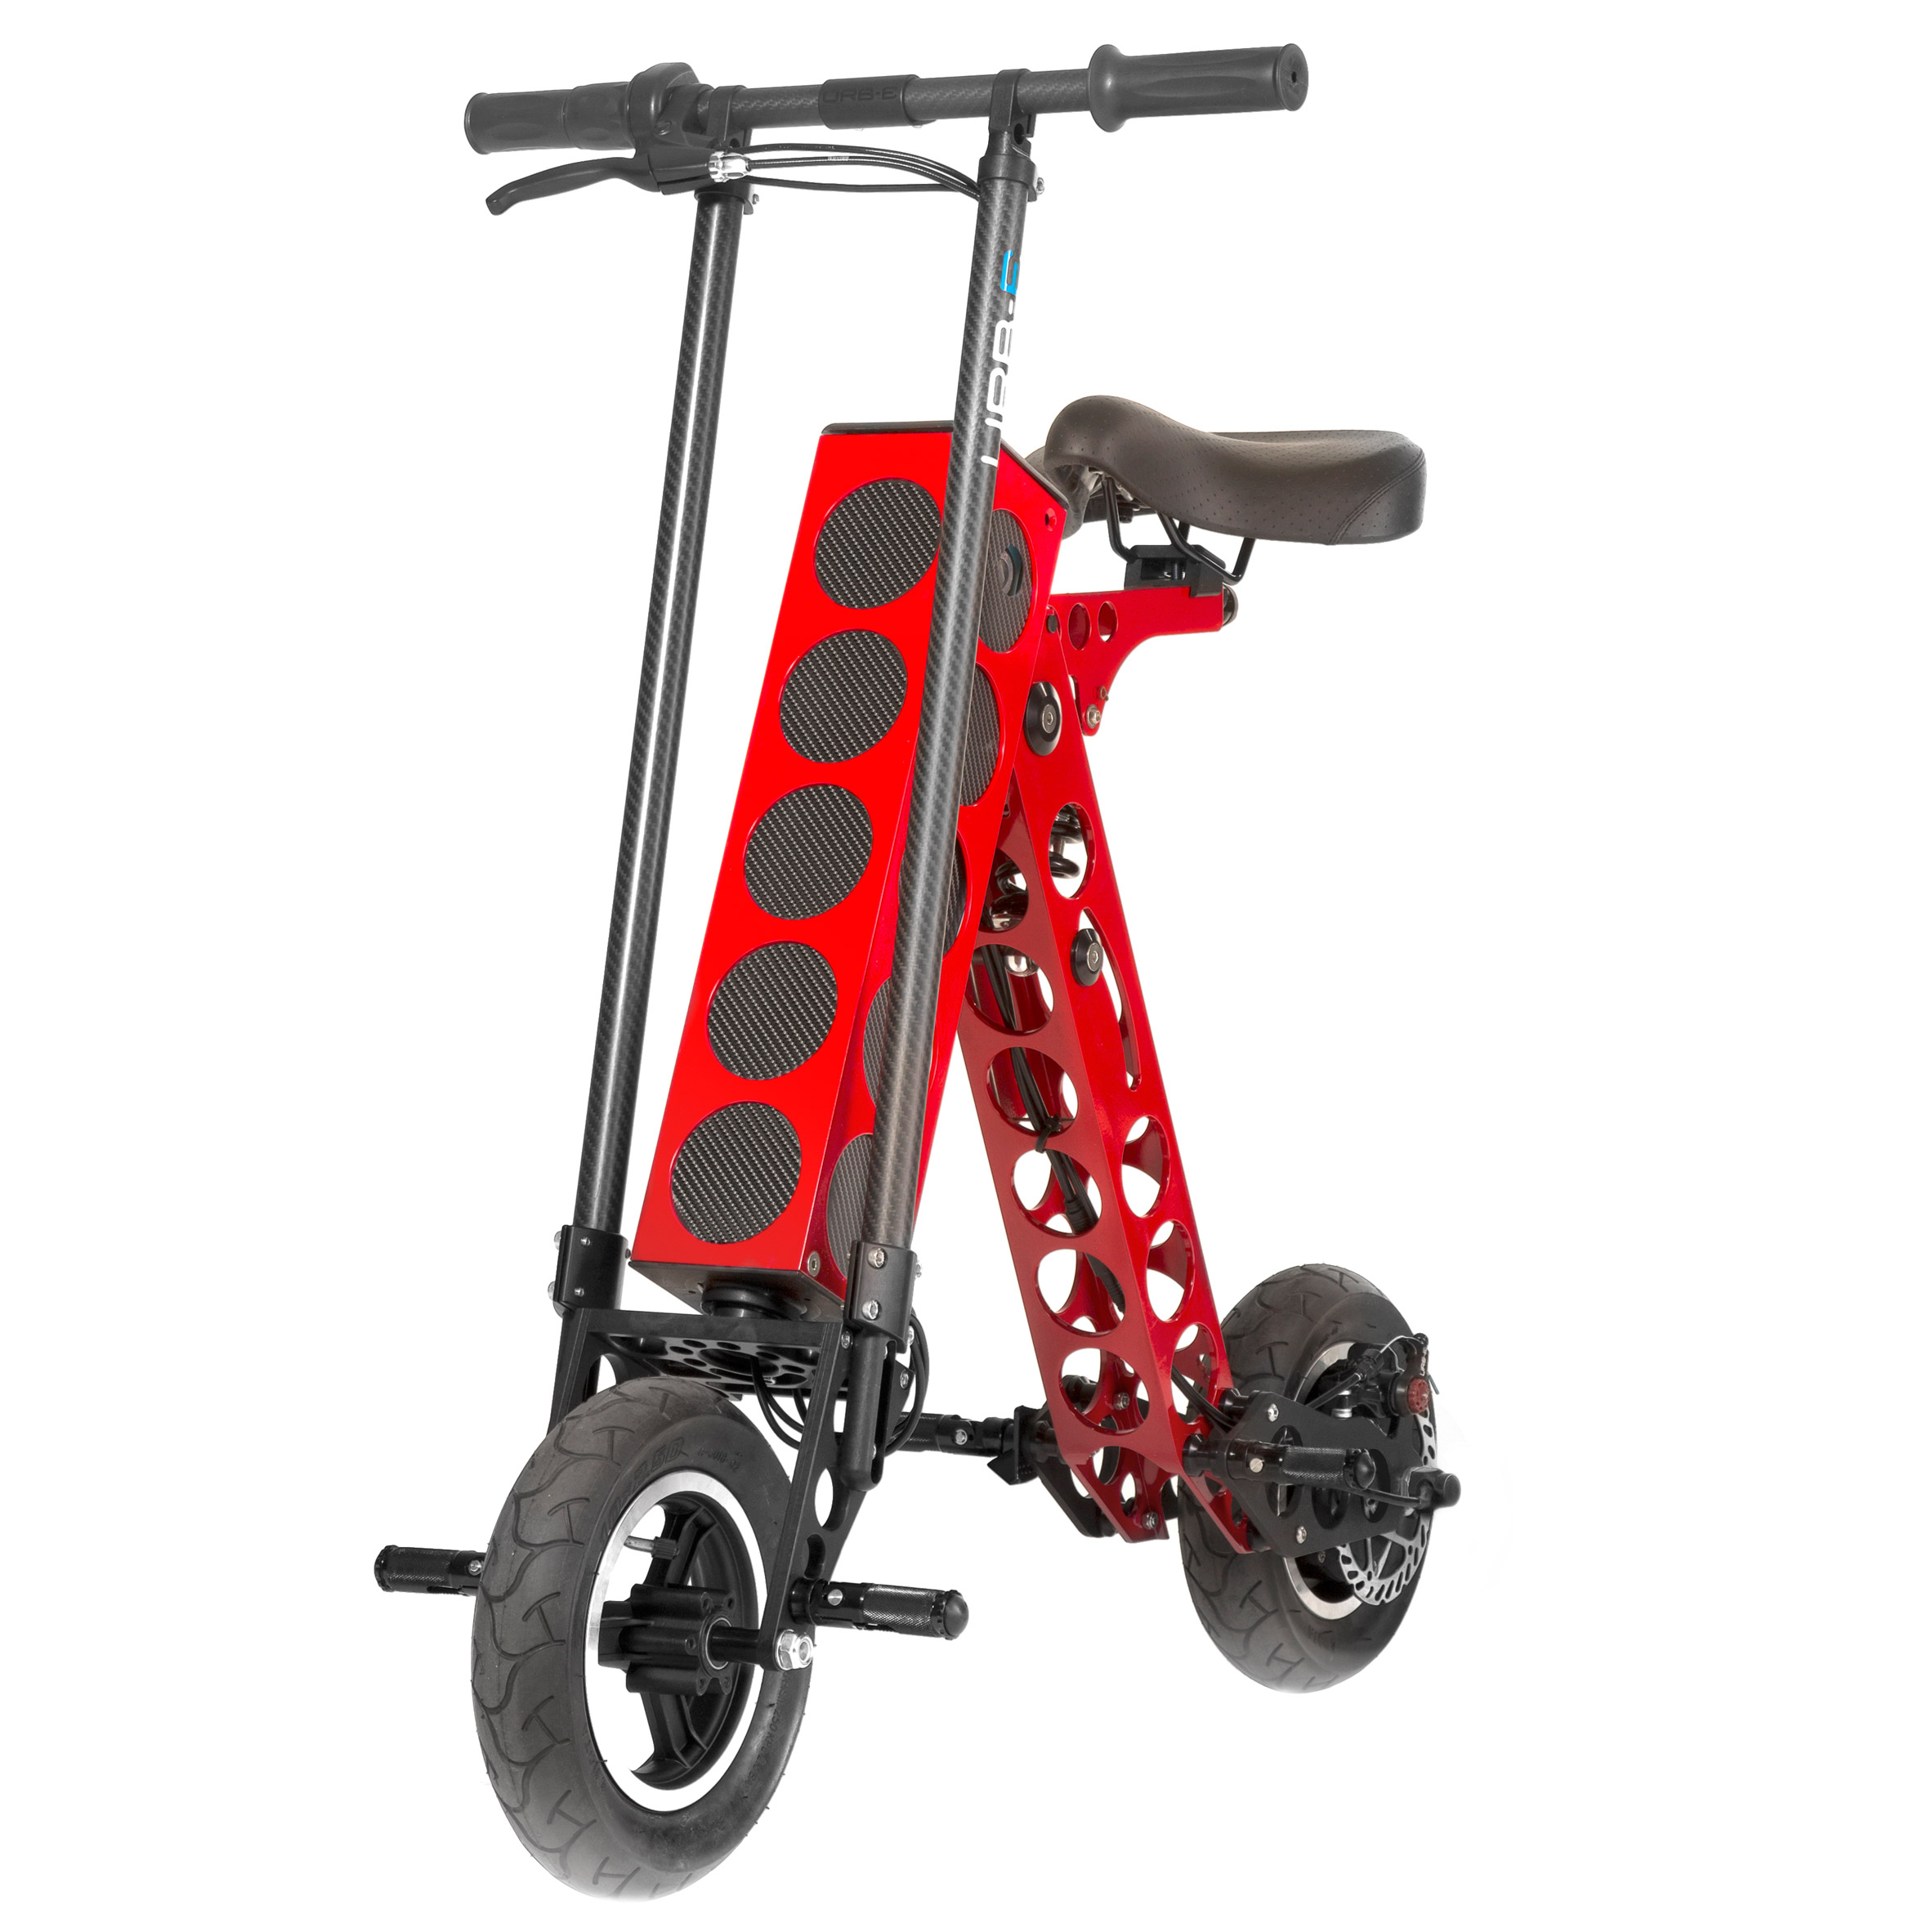 URB-E Sport electric scooter charges multiple electronic devices simultaneously